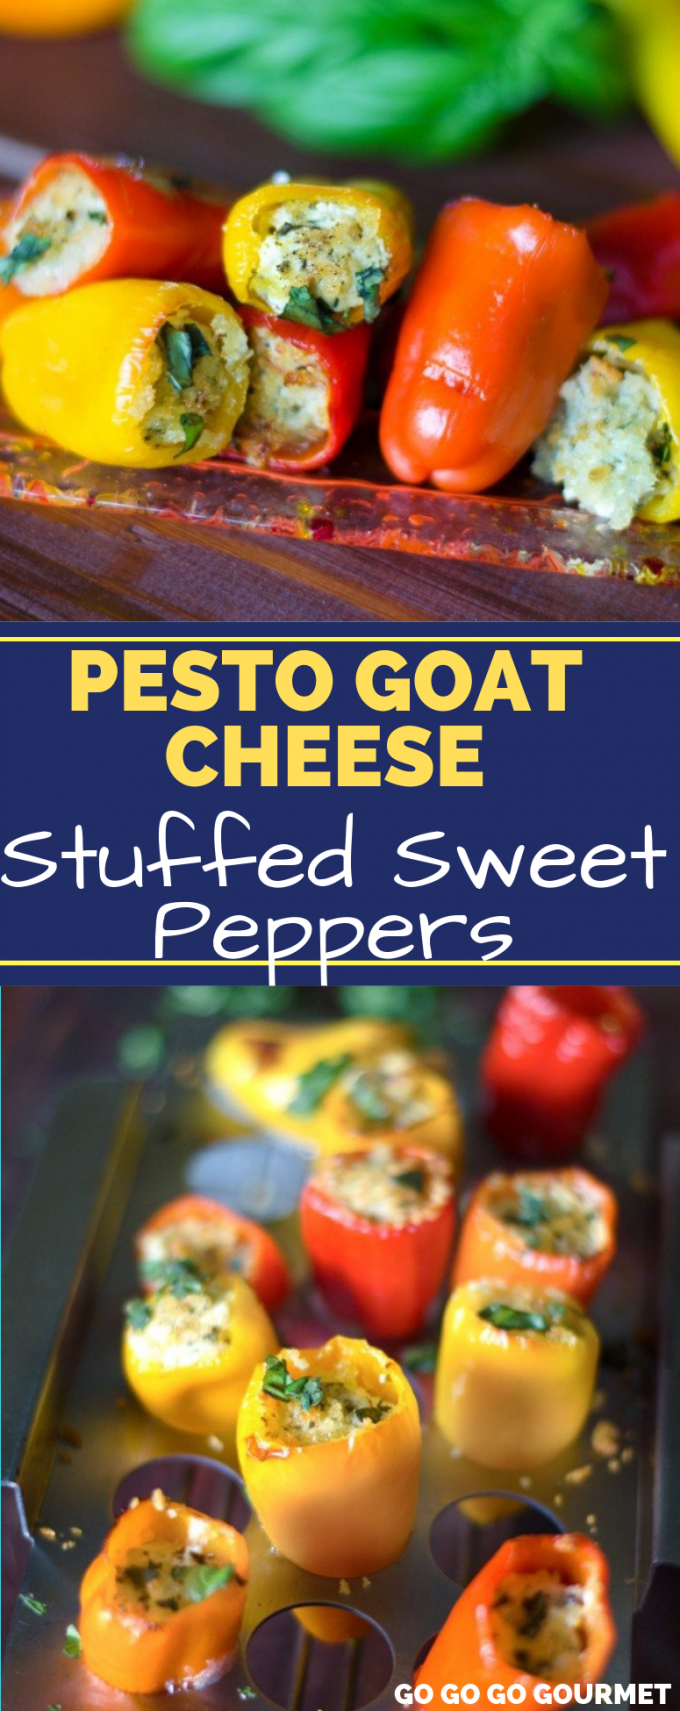 These Pesto Goat Cheese Stuffed Sweet Peppers make the perfect appetizers! Whether you serve them cold or warm, these little bites make a great party food! It will easily become one of your go-to recipes! #gogogogourmet #pestogoatcheesestuffedpeppers #goatcheesestuffedpeppers #stuffedpeppers #partyappetizers #easyappetizers via @gogogogourmet